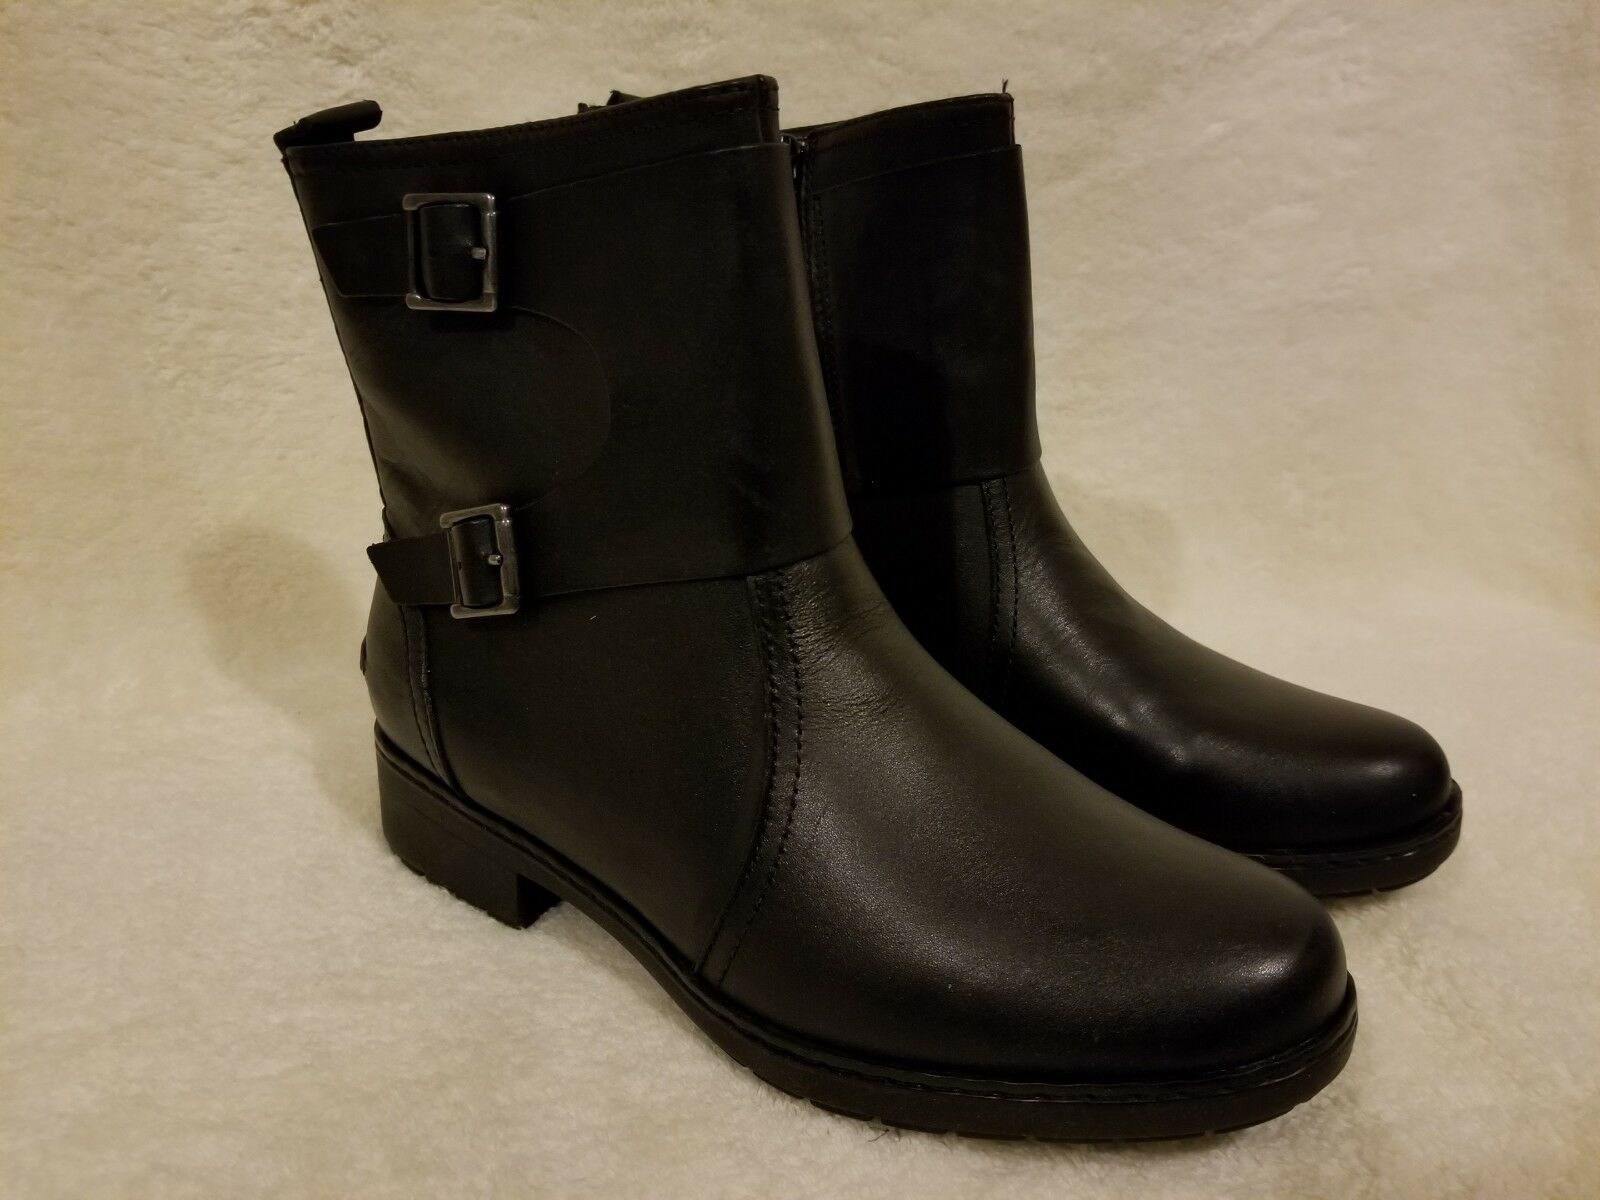 NEW Clarks Women's Boots Merrian Betsy  Black Leather Sz 7M